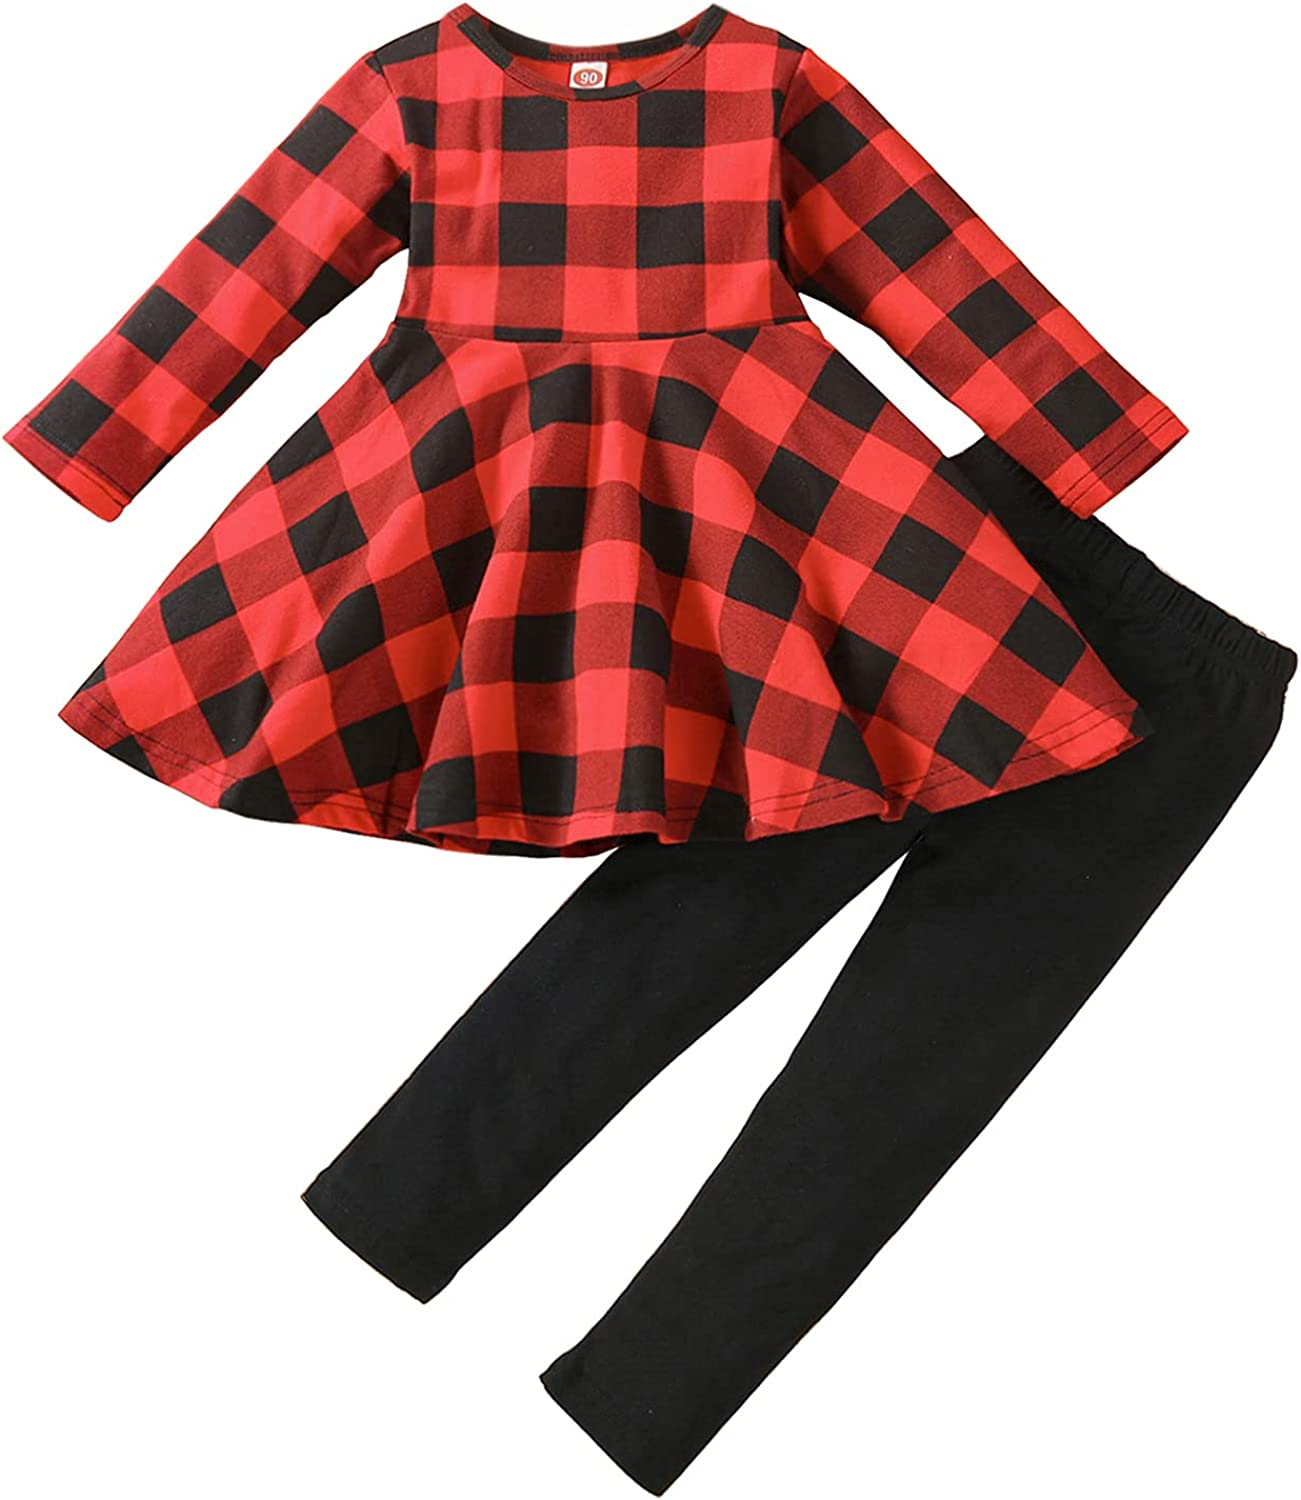 Toddler-Baby-Girl-Christmas-Clothes-Set Little Girls Tunic Dress +Leggings Outfit Princess Boutique Clothing